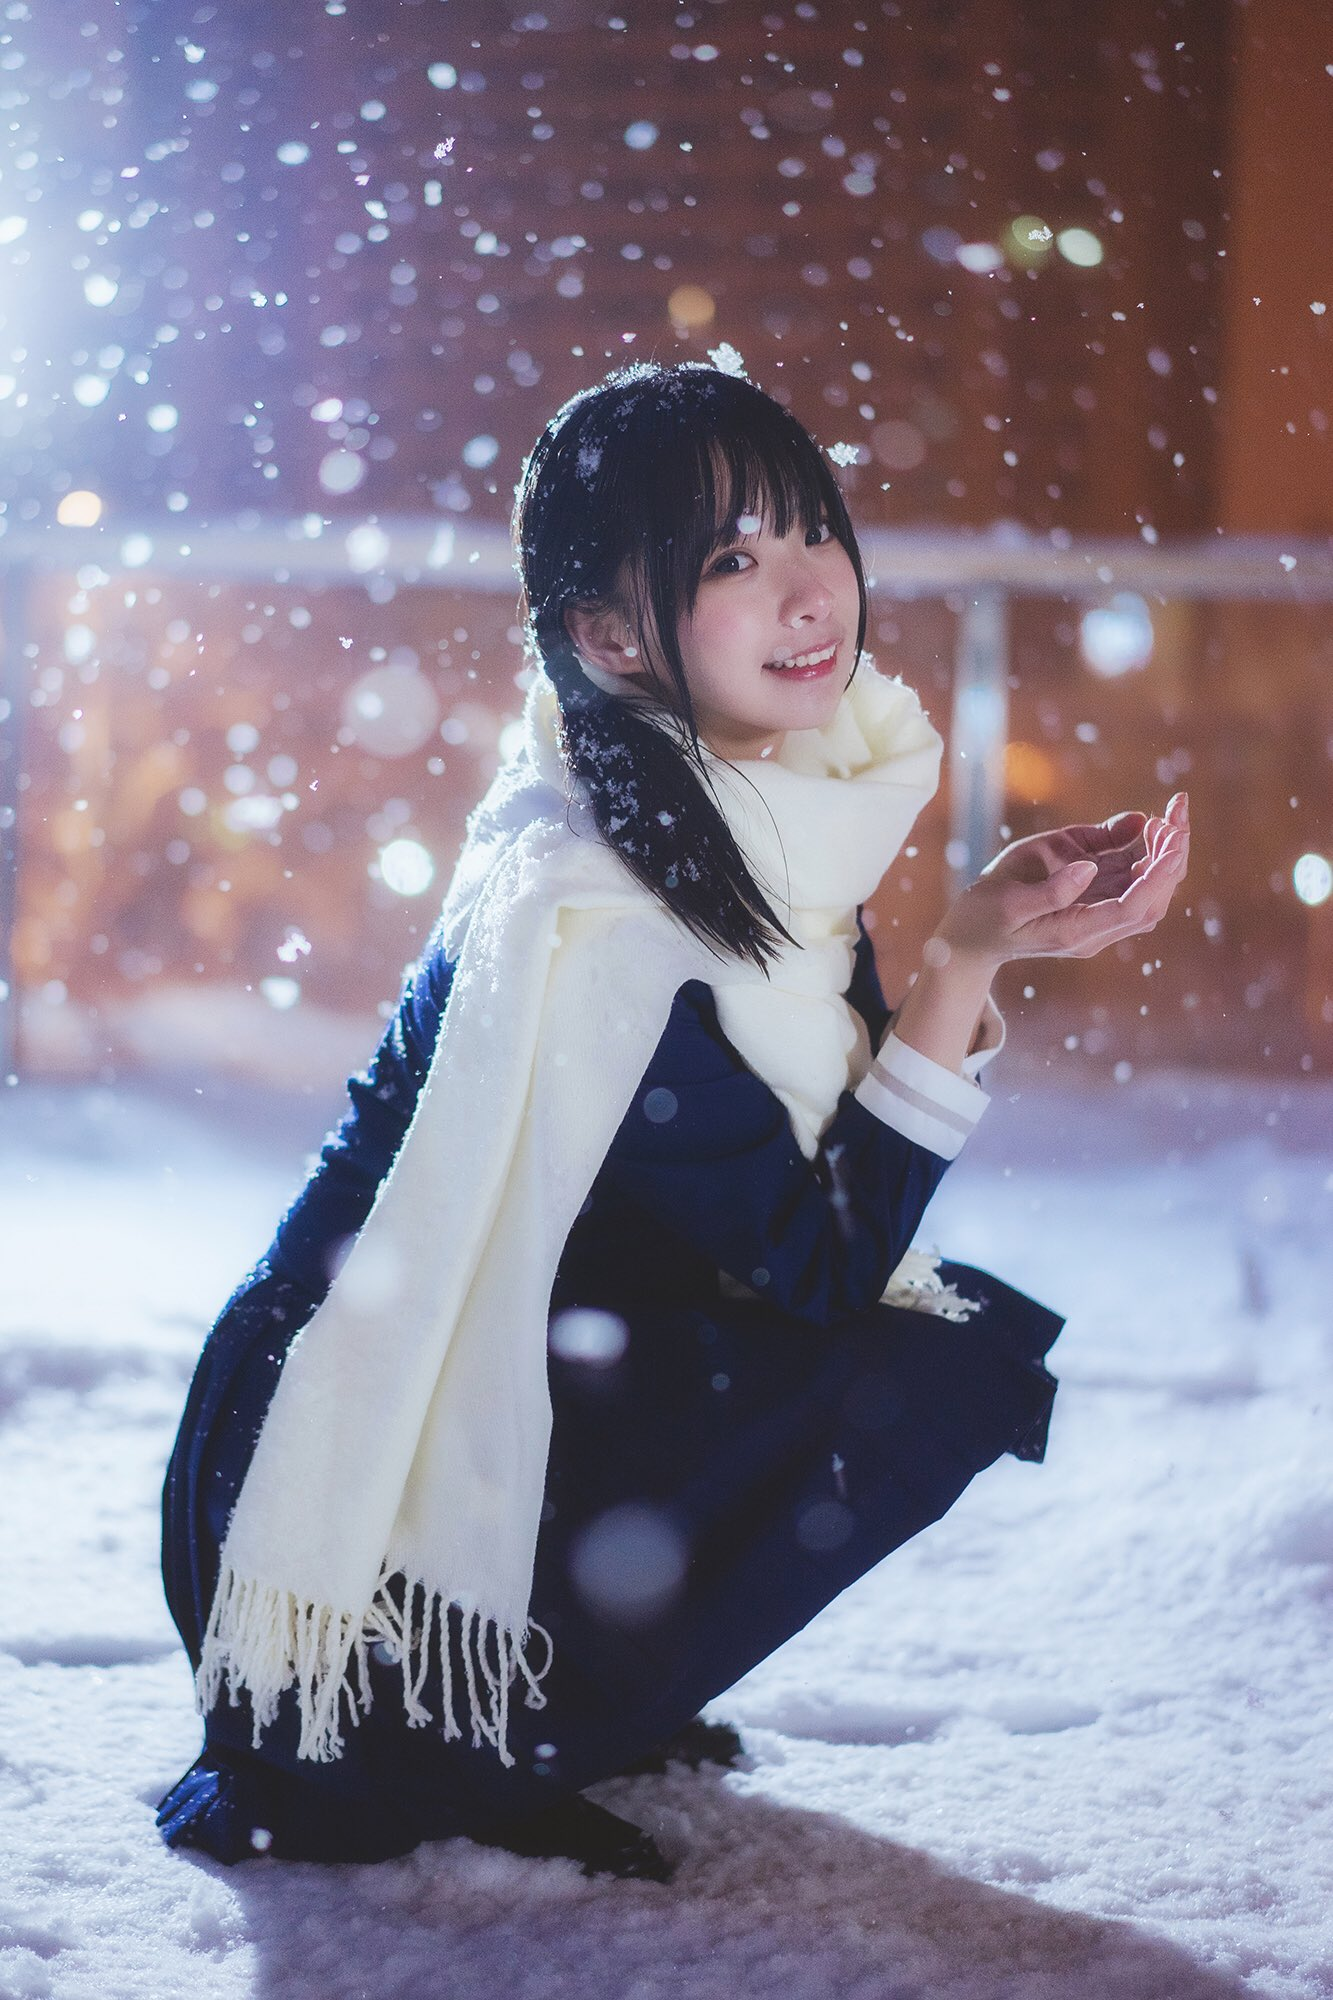 今年的第一場初雪,可以玩雪真高興 #制服美少女 #瀏海》#Cute #Girl #Pretty #Girls #漂亮 #可愛 #青春活力